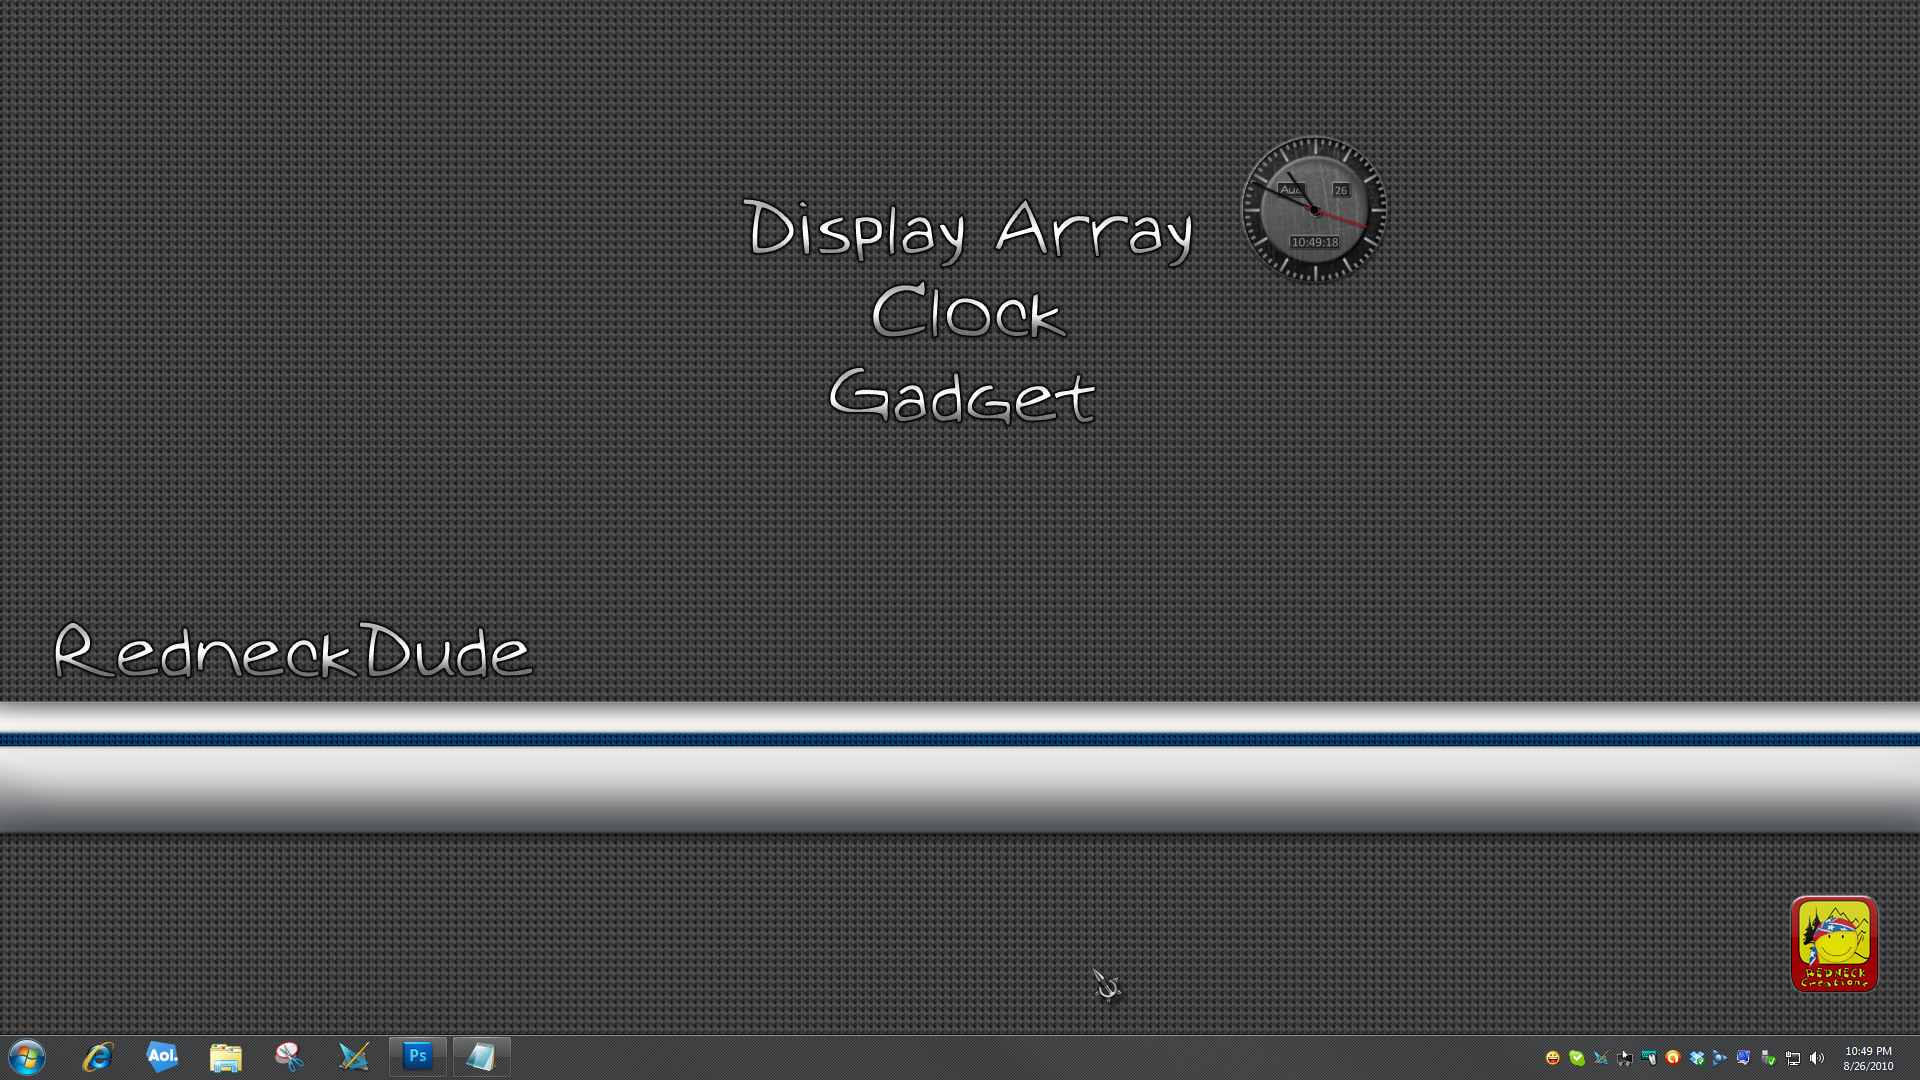 Display Array Clock Gadget